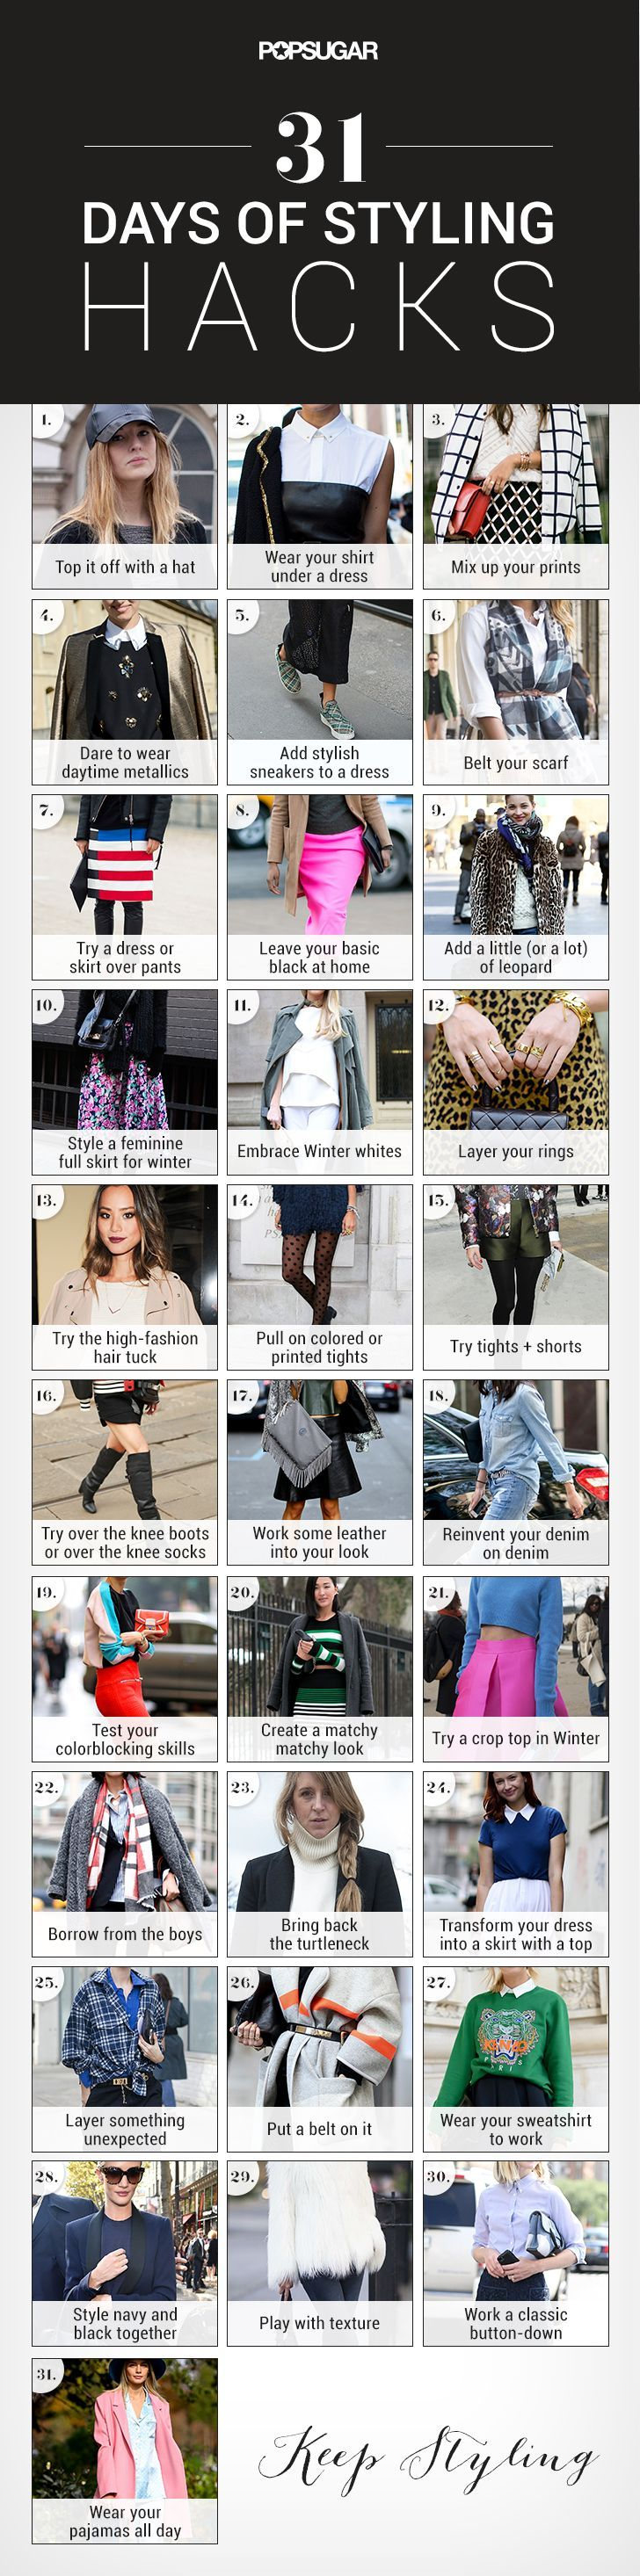 31 hacks to change up your style, something fun to try this week!